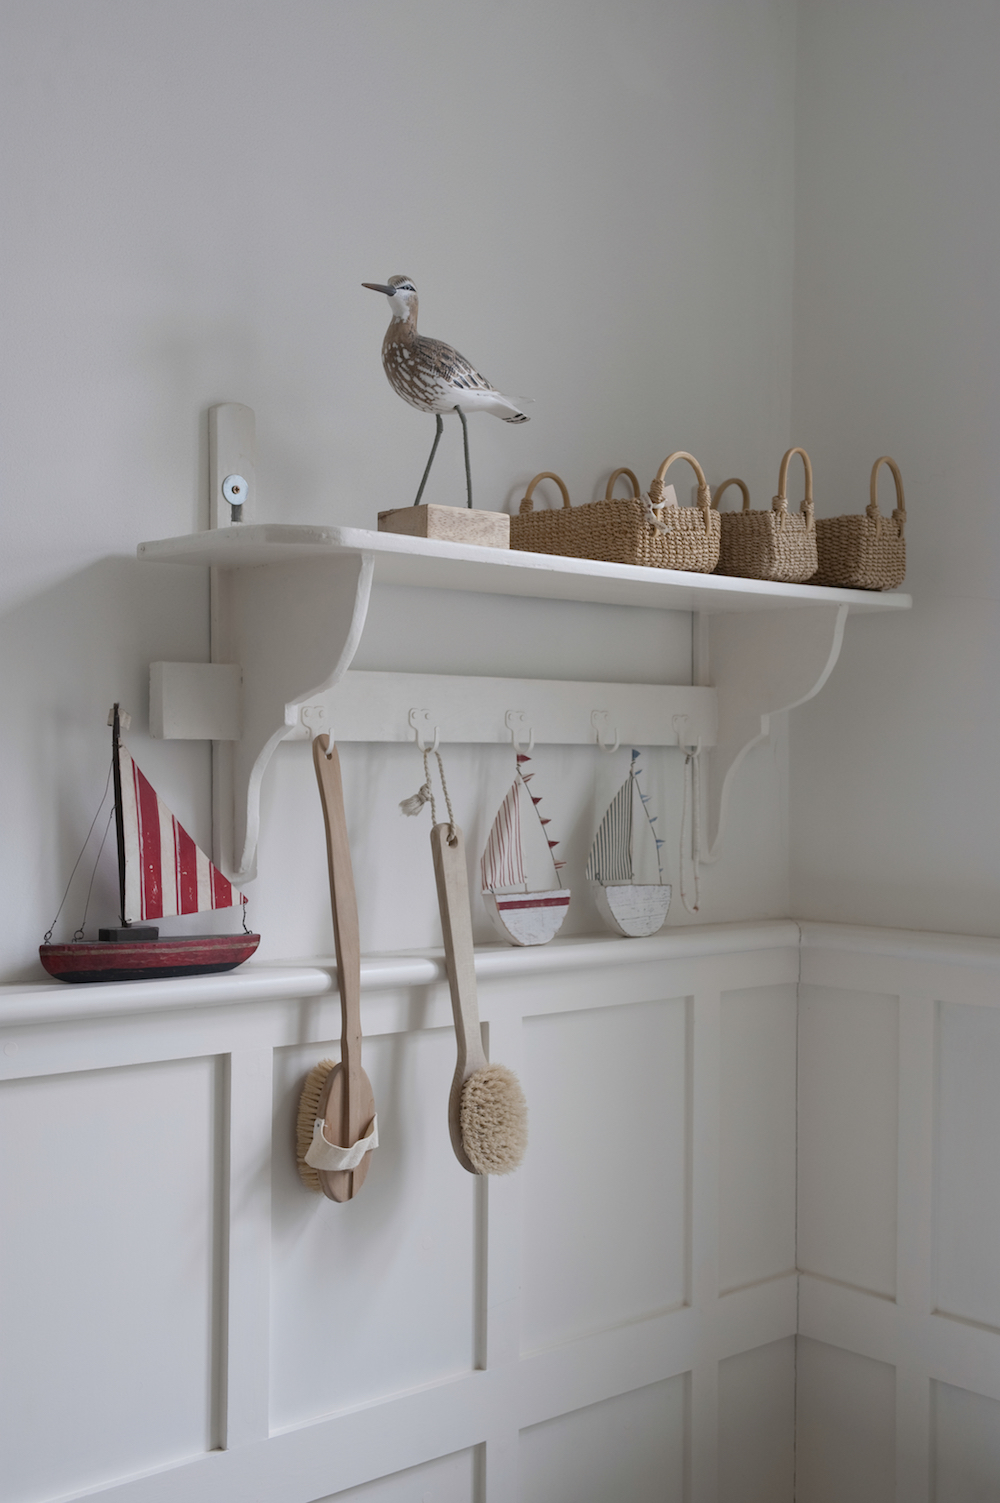 Holiday Home Inspired: A white shelf with wicker baskets, a bird ornament and wooden boat ornaments around it